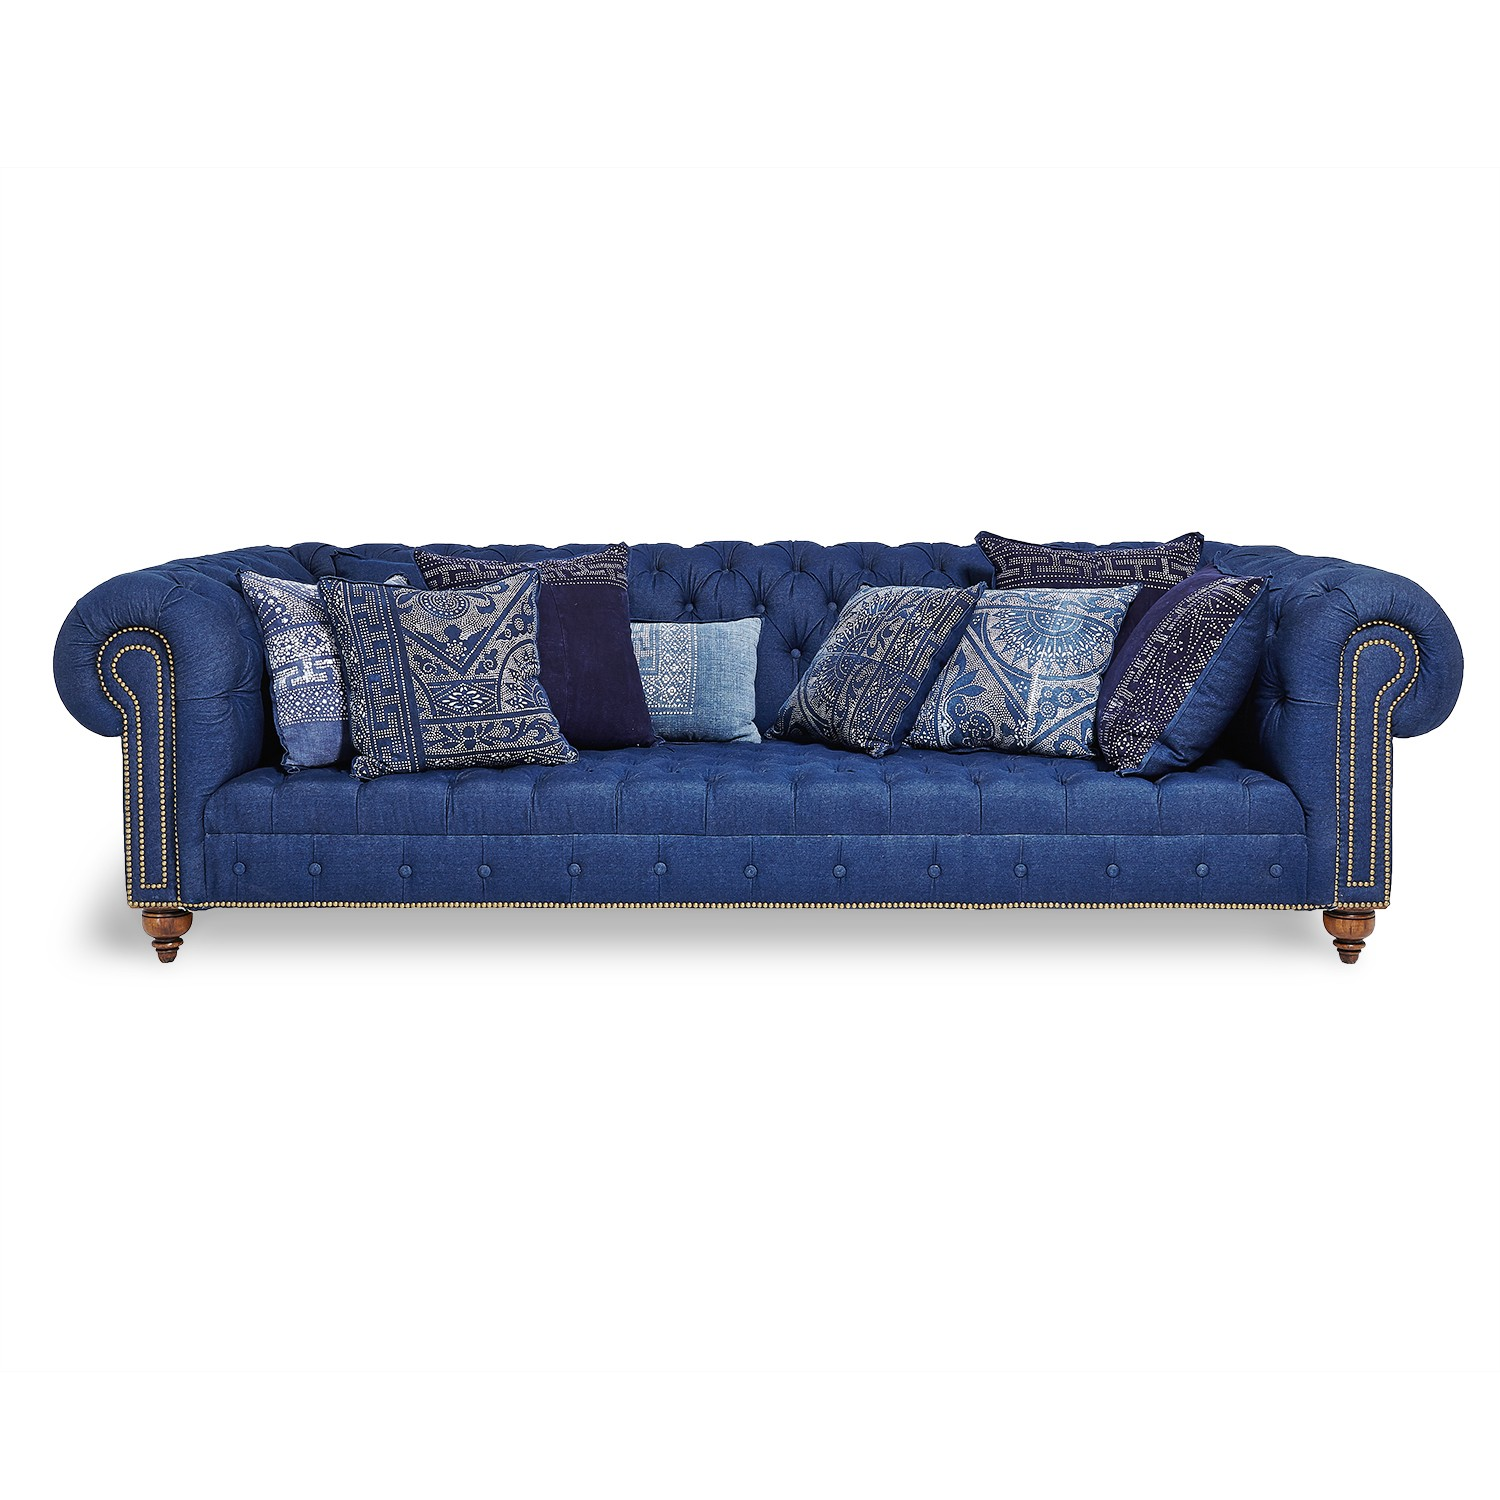 Xxl Chesterfield Sofa Chesterfield 3 Sitzer Xxl Polster Sitz Couch Sofa Garnitur